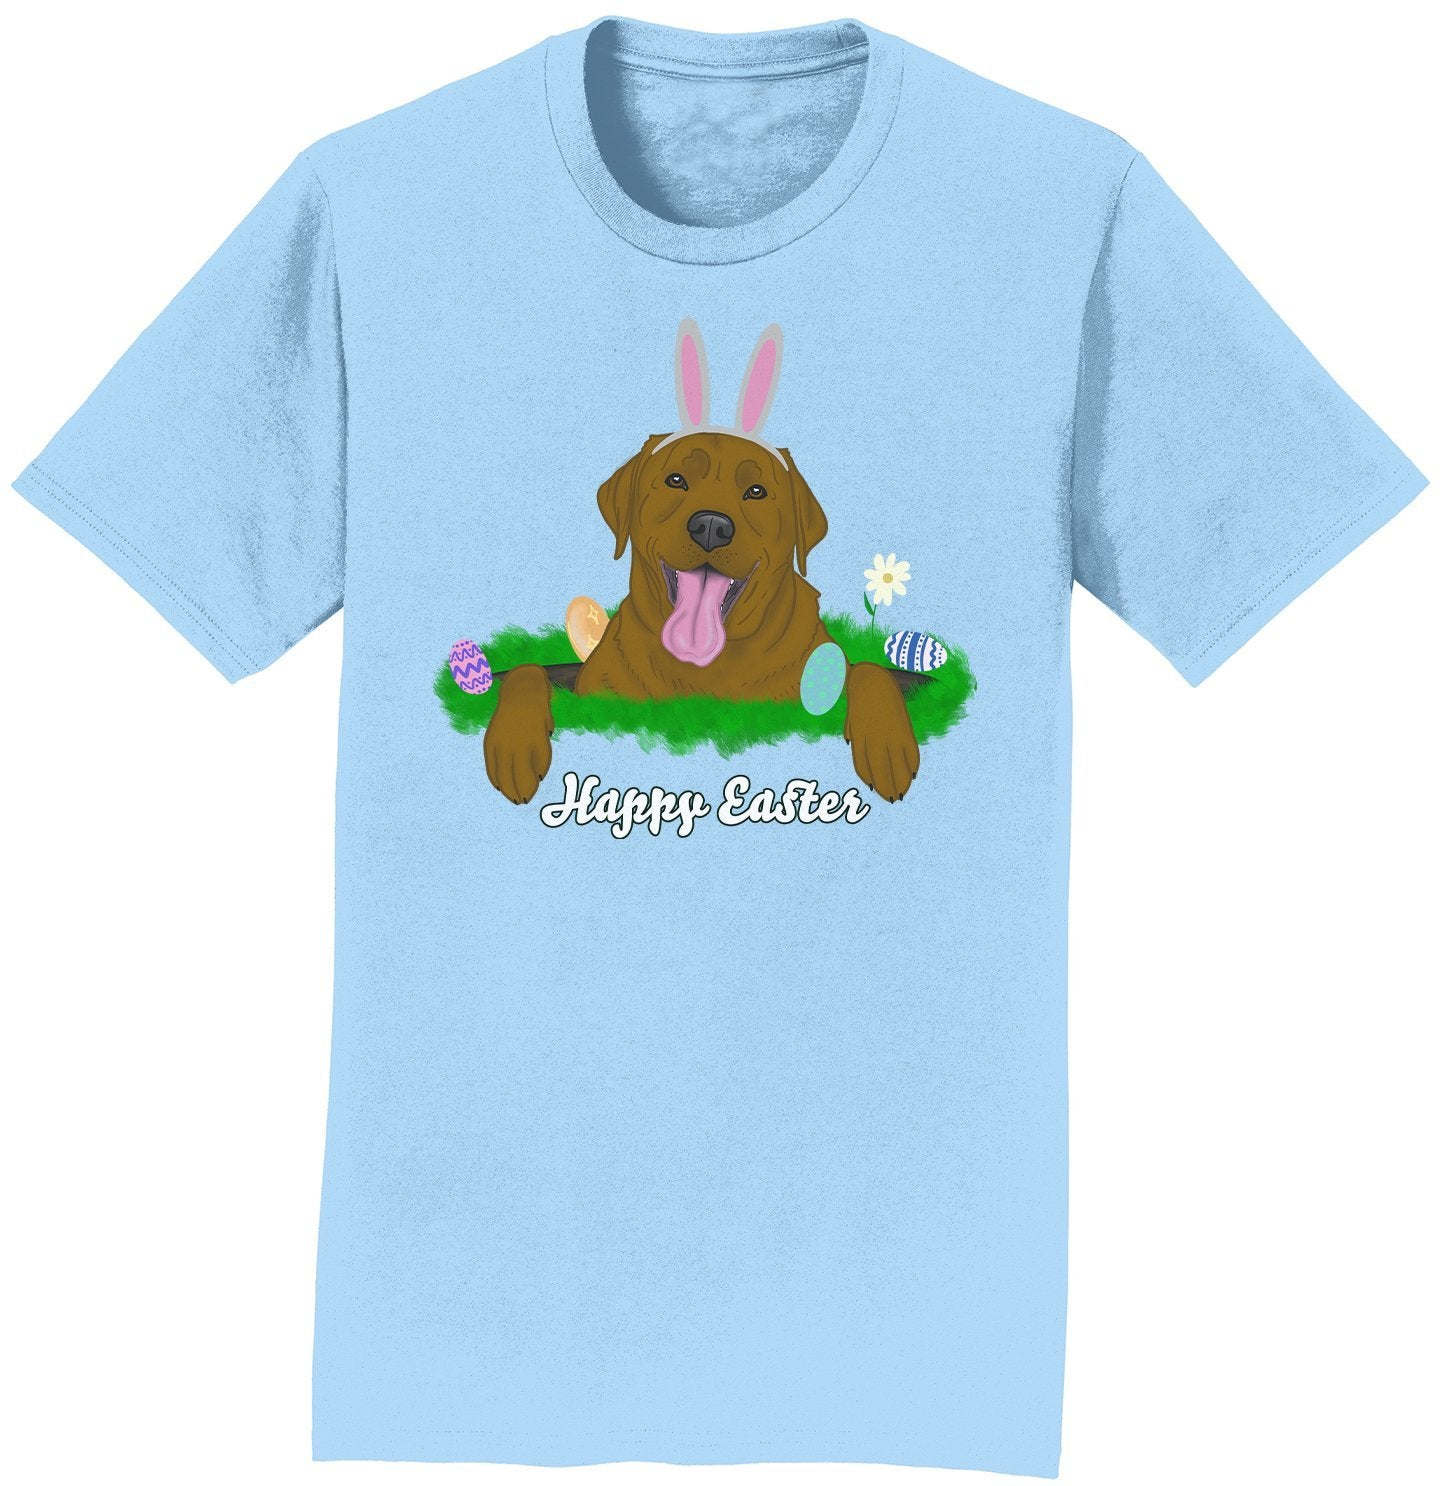 Labradors.com - Rabbit Hole Chocolate Labrador  - Adult Unisex T-Shirt